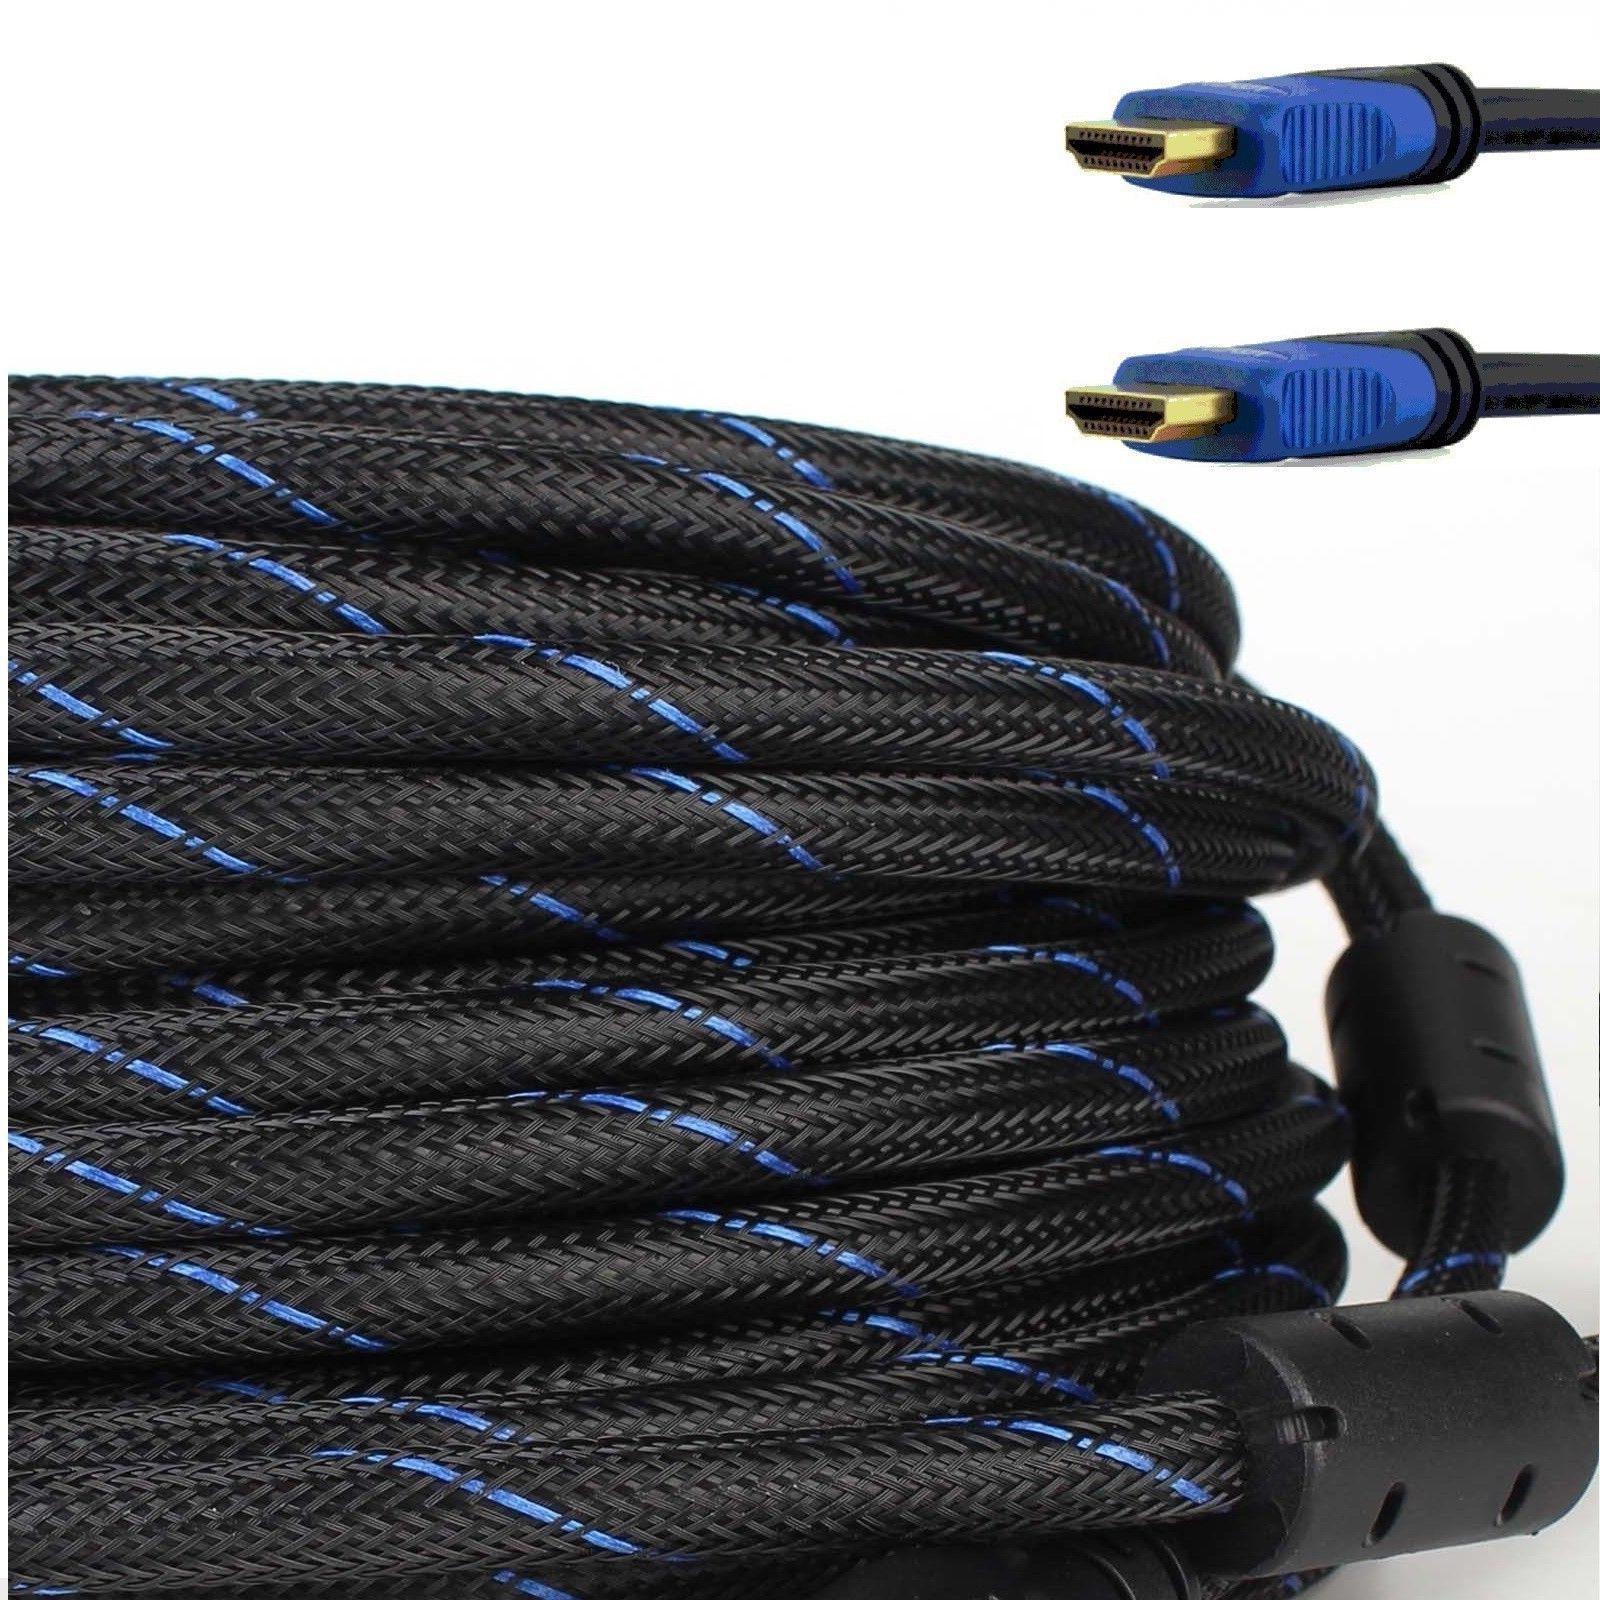 HDMI CABLE Cord 6FT 15FT 30FT 50FT HIGH SPEED Blue